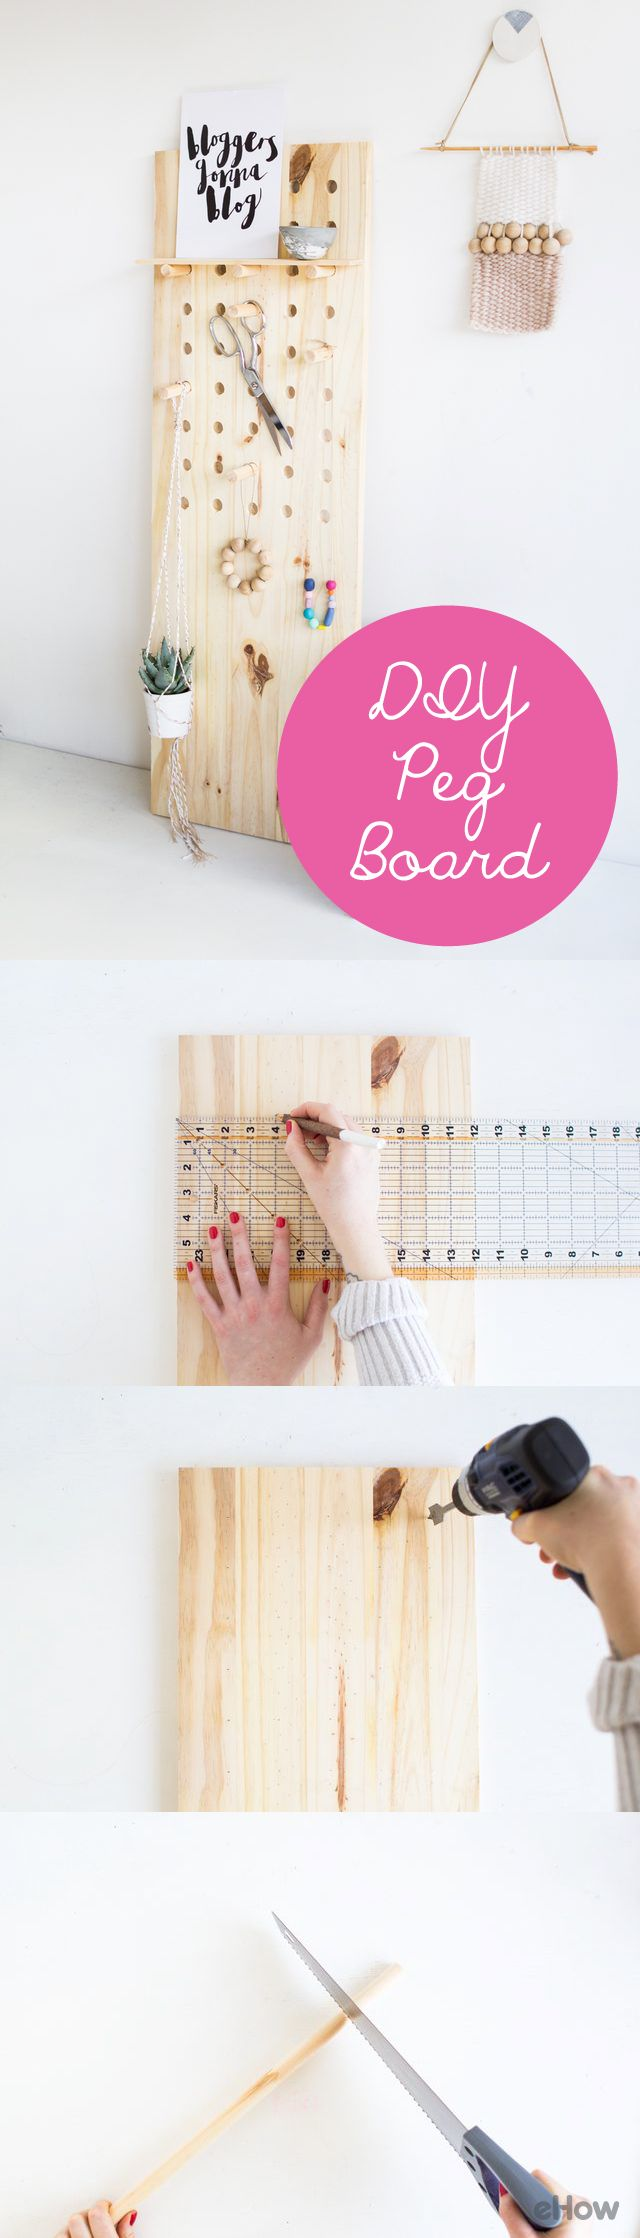 how to make your own peg board - Peg Boards